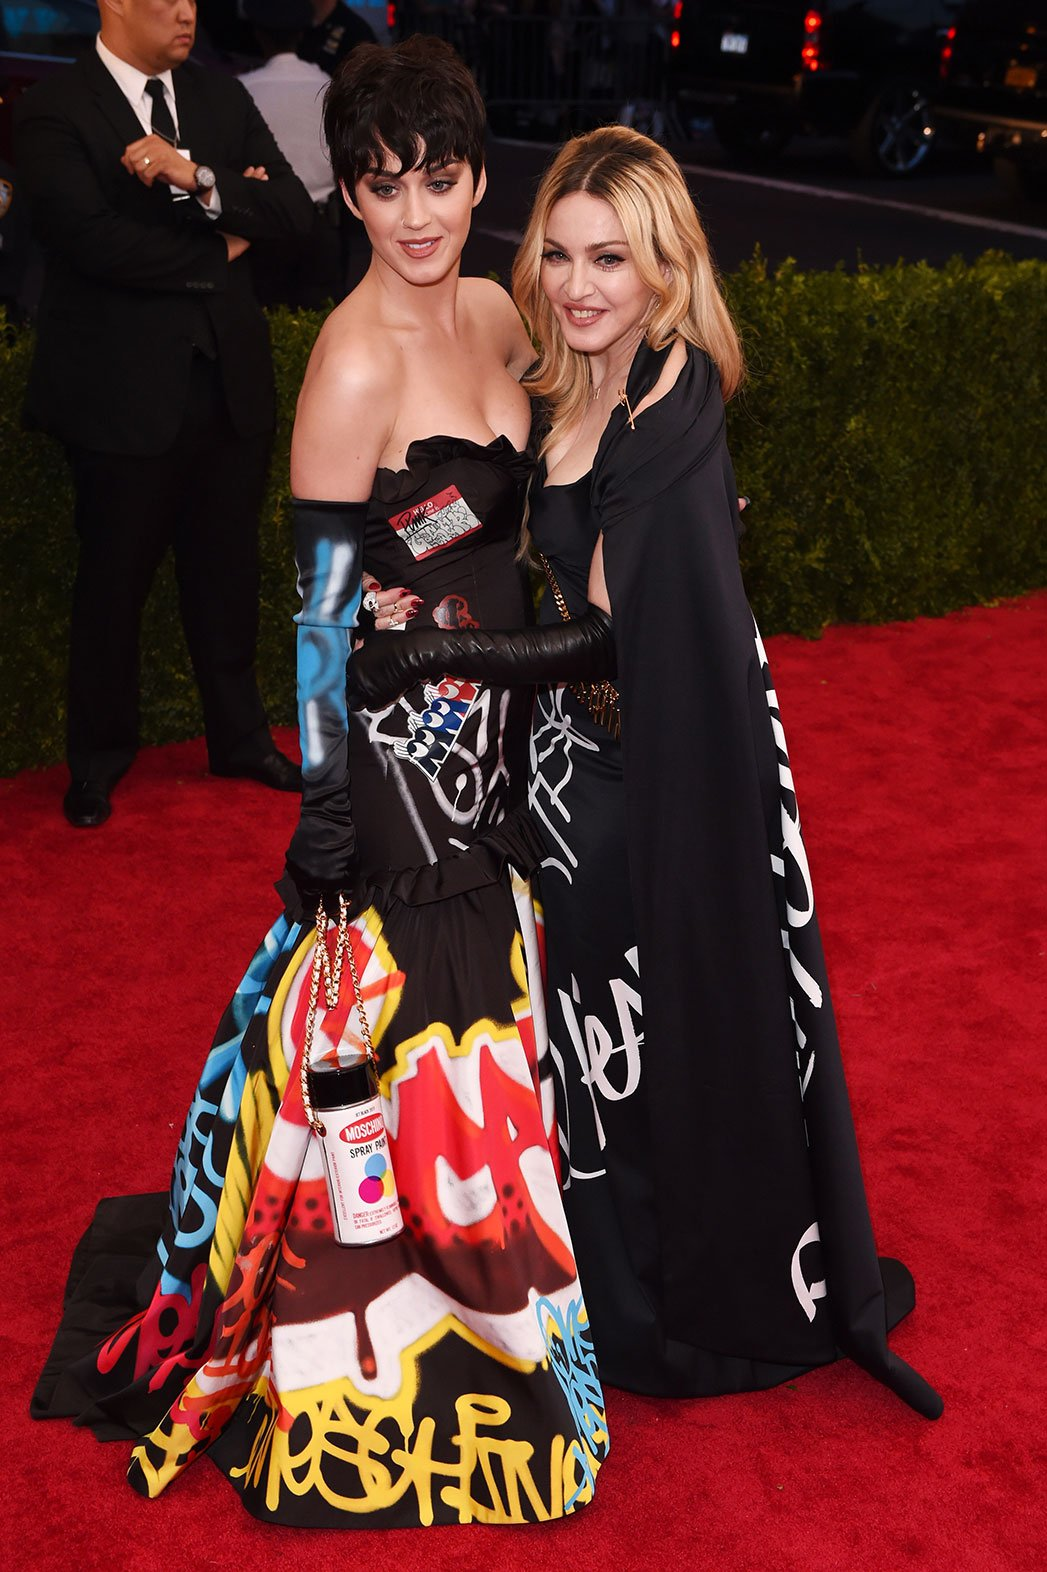 Katy Perry and Madonna both in Moschino